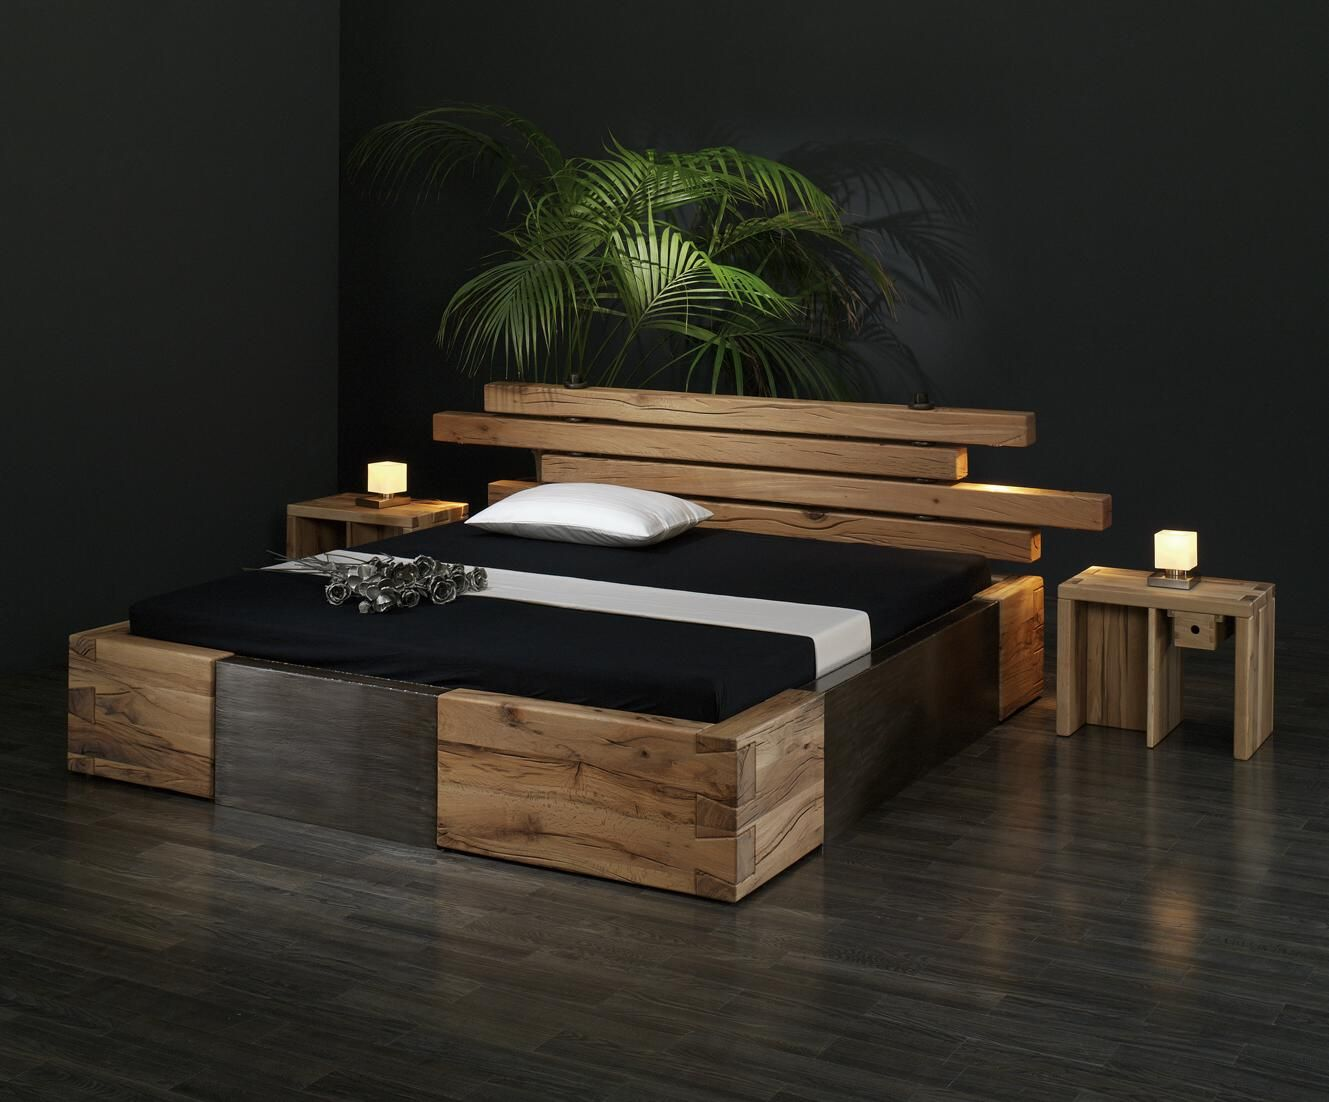 holz bett design google search yatak odas pinterest bett schlafzimmer und betten. Black Bedroom Furniture Sets. Home Design Ideas